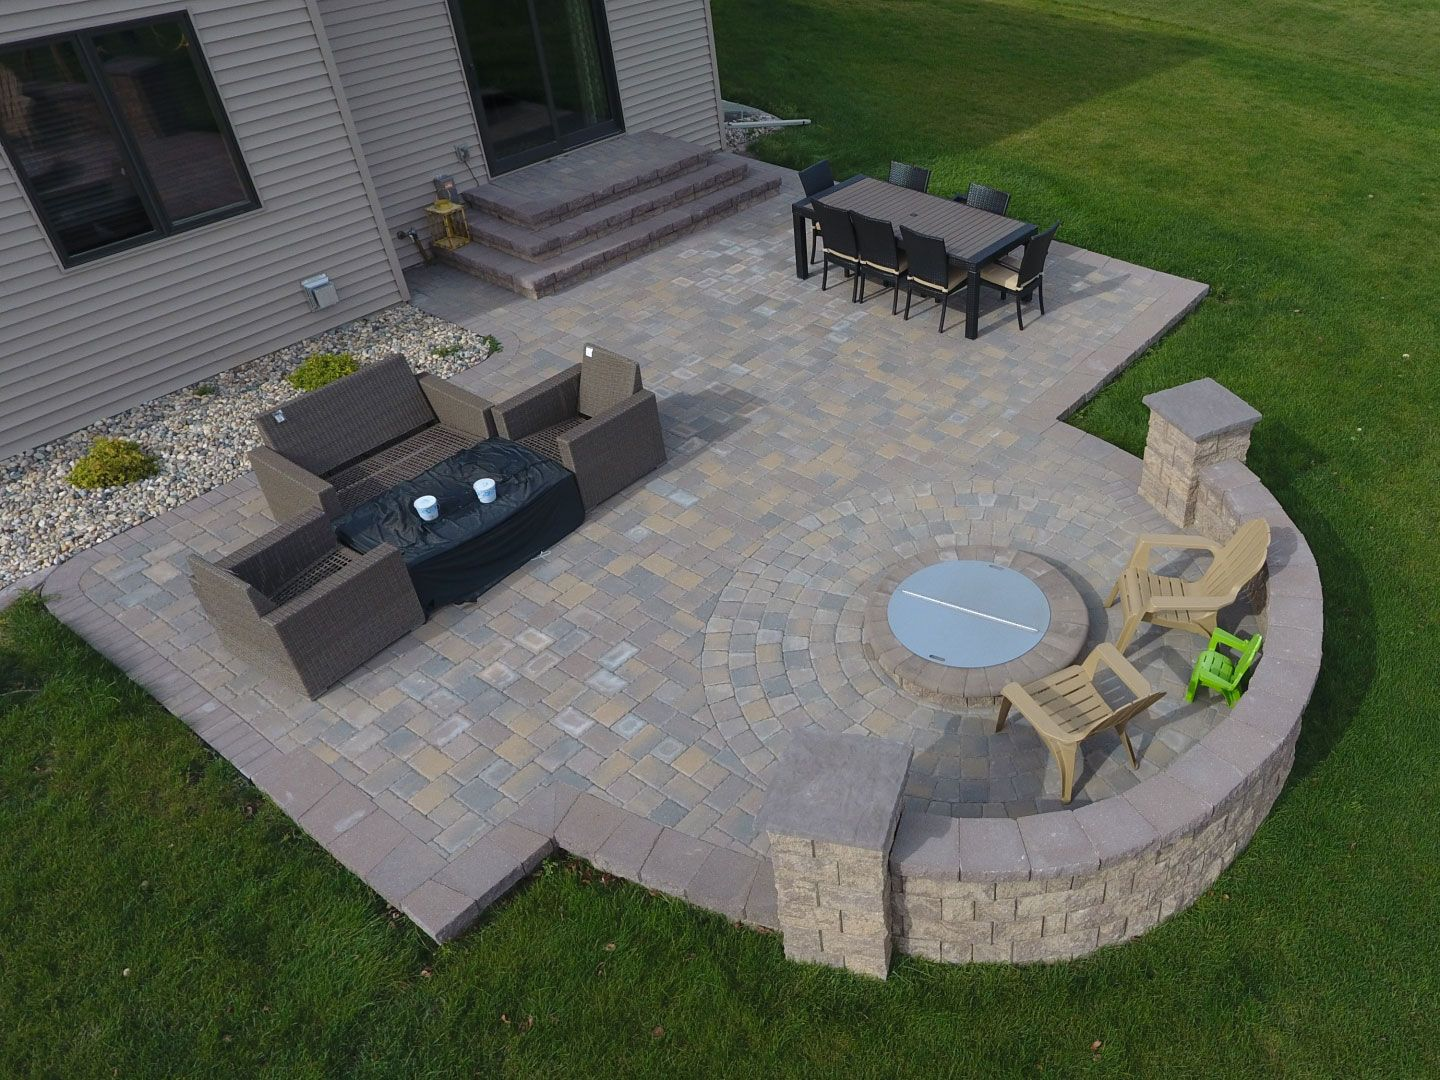 Fire Pit with Seat Wall and Paver Patio   Patio stones ... on Paver Patio Designs With Fire Pit id=49767